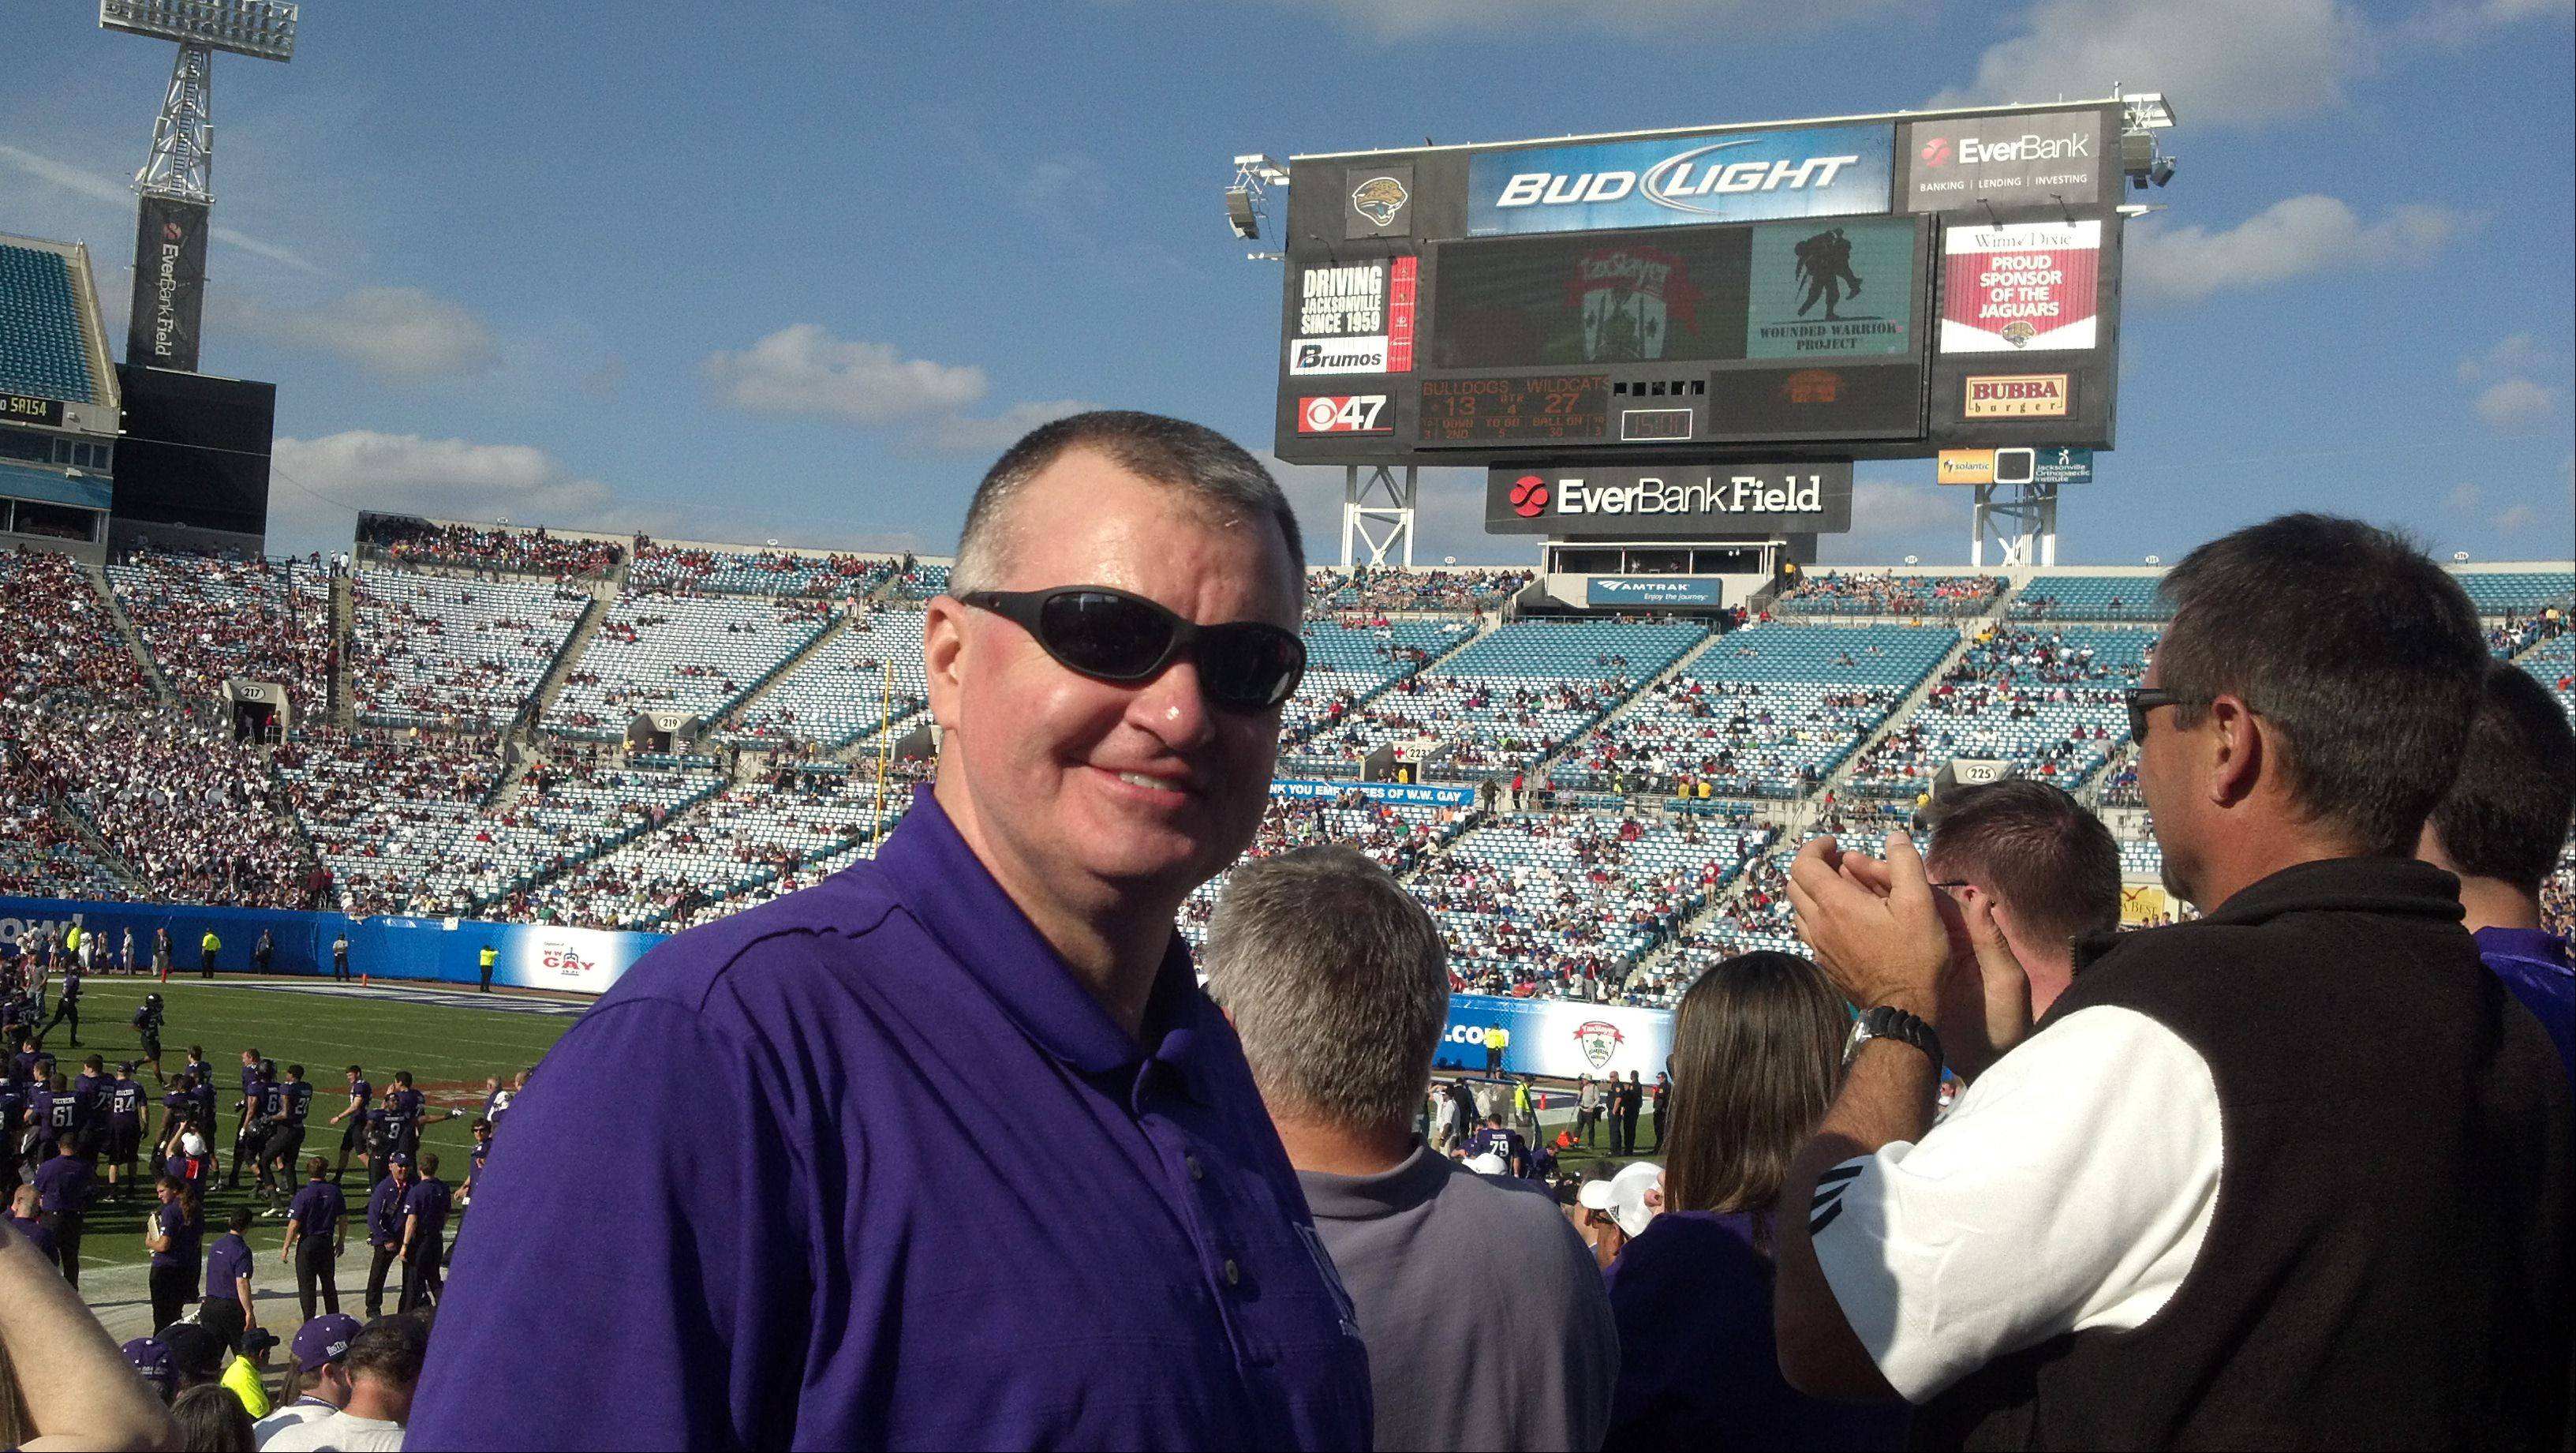 During the Gator Bowl in Jacksonville, Florida at Everbank Field.